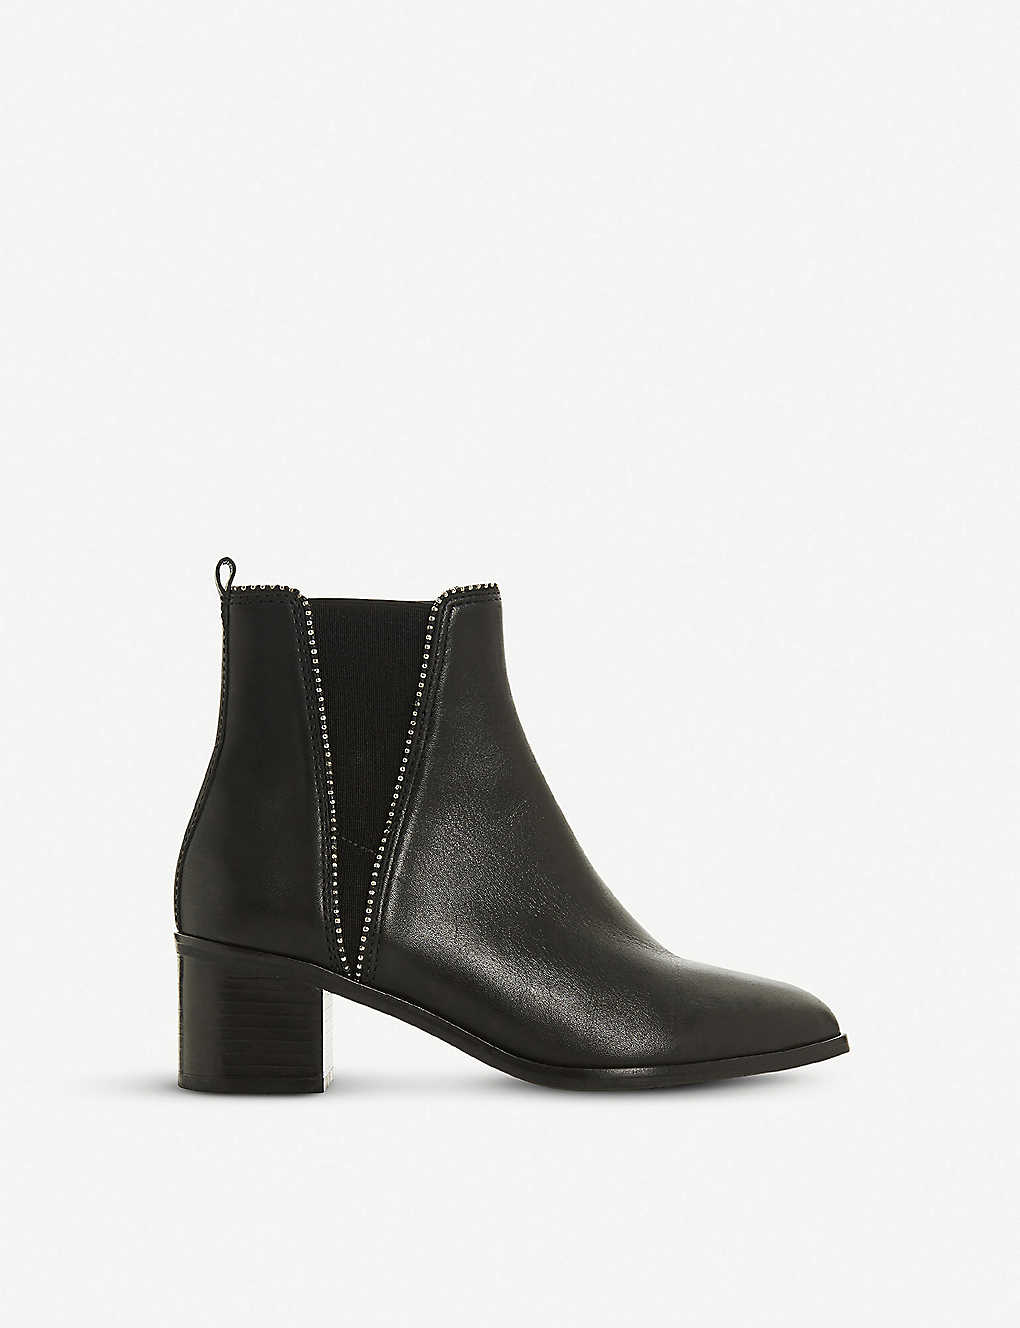 d0ab68ffd46 Portobello studded leather chelsea boots